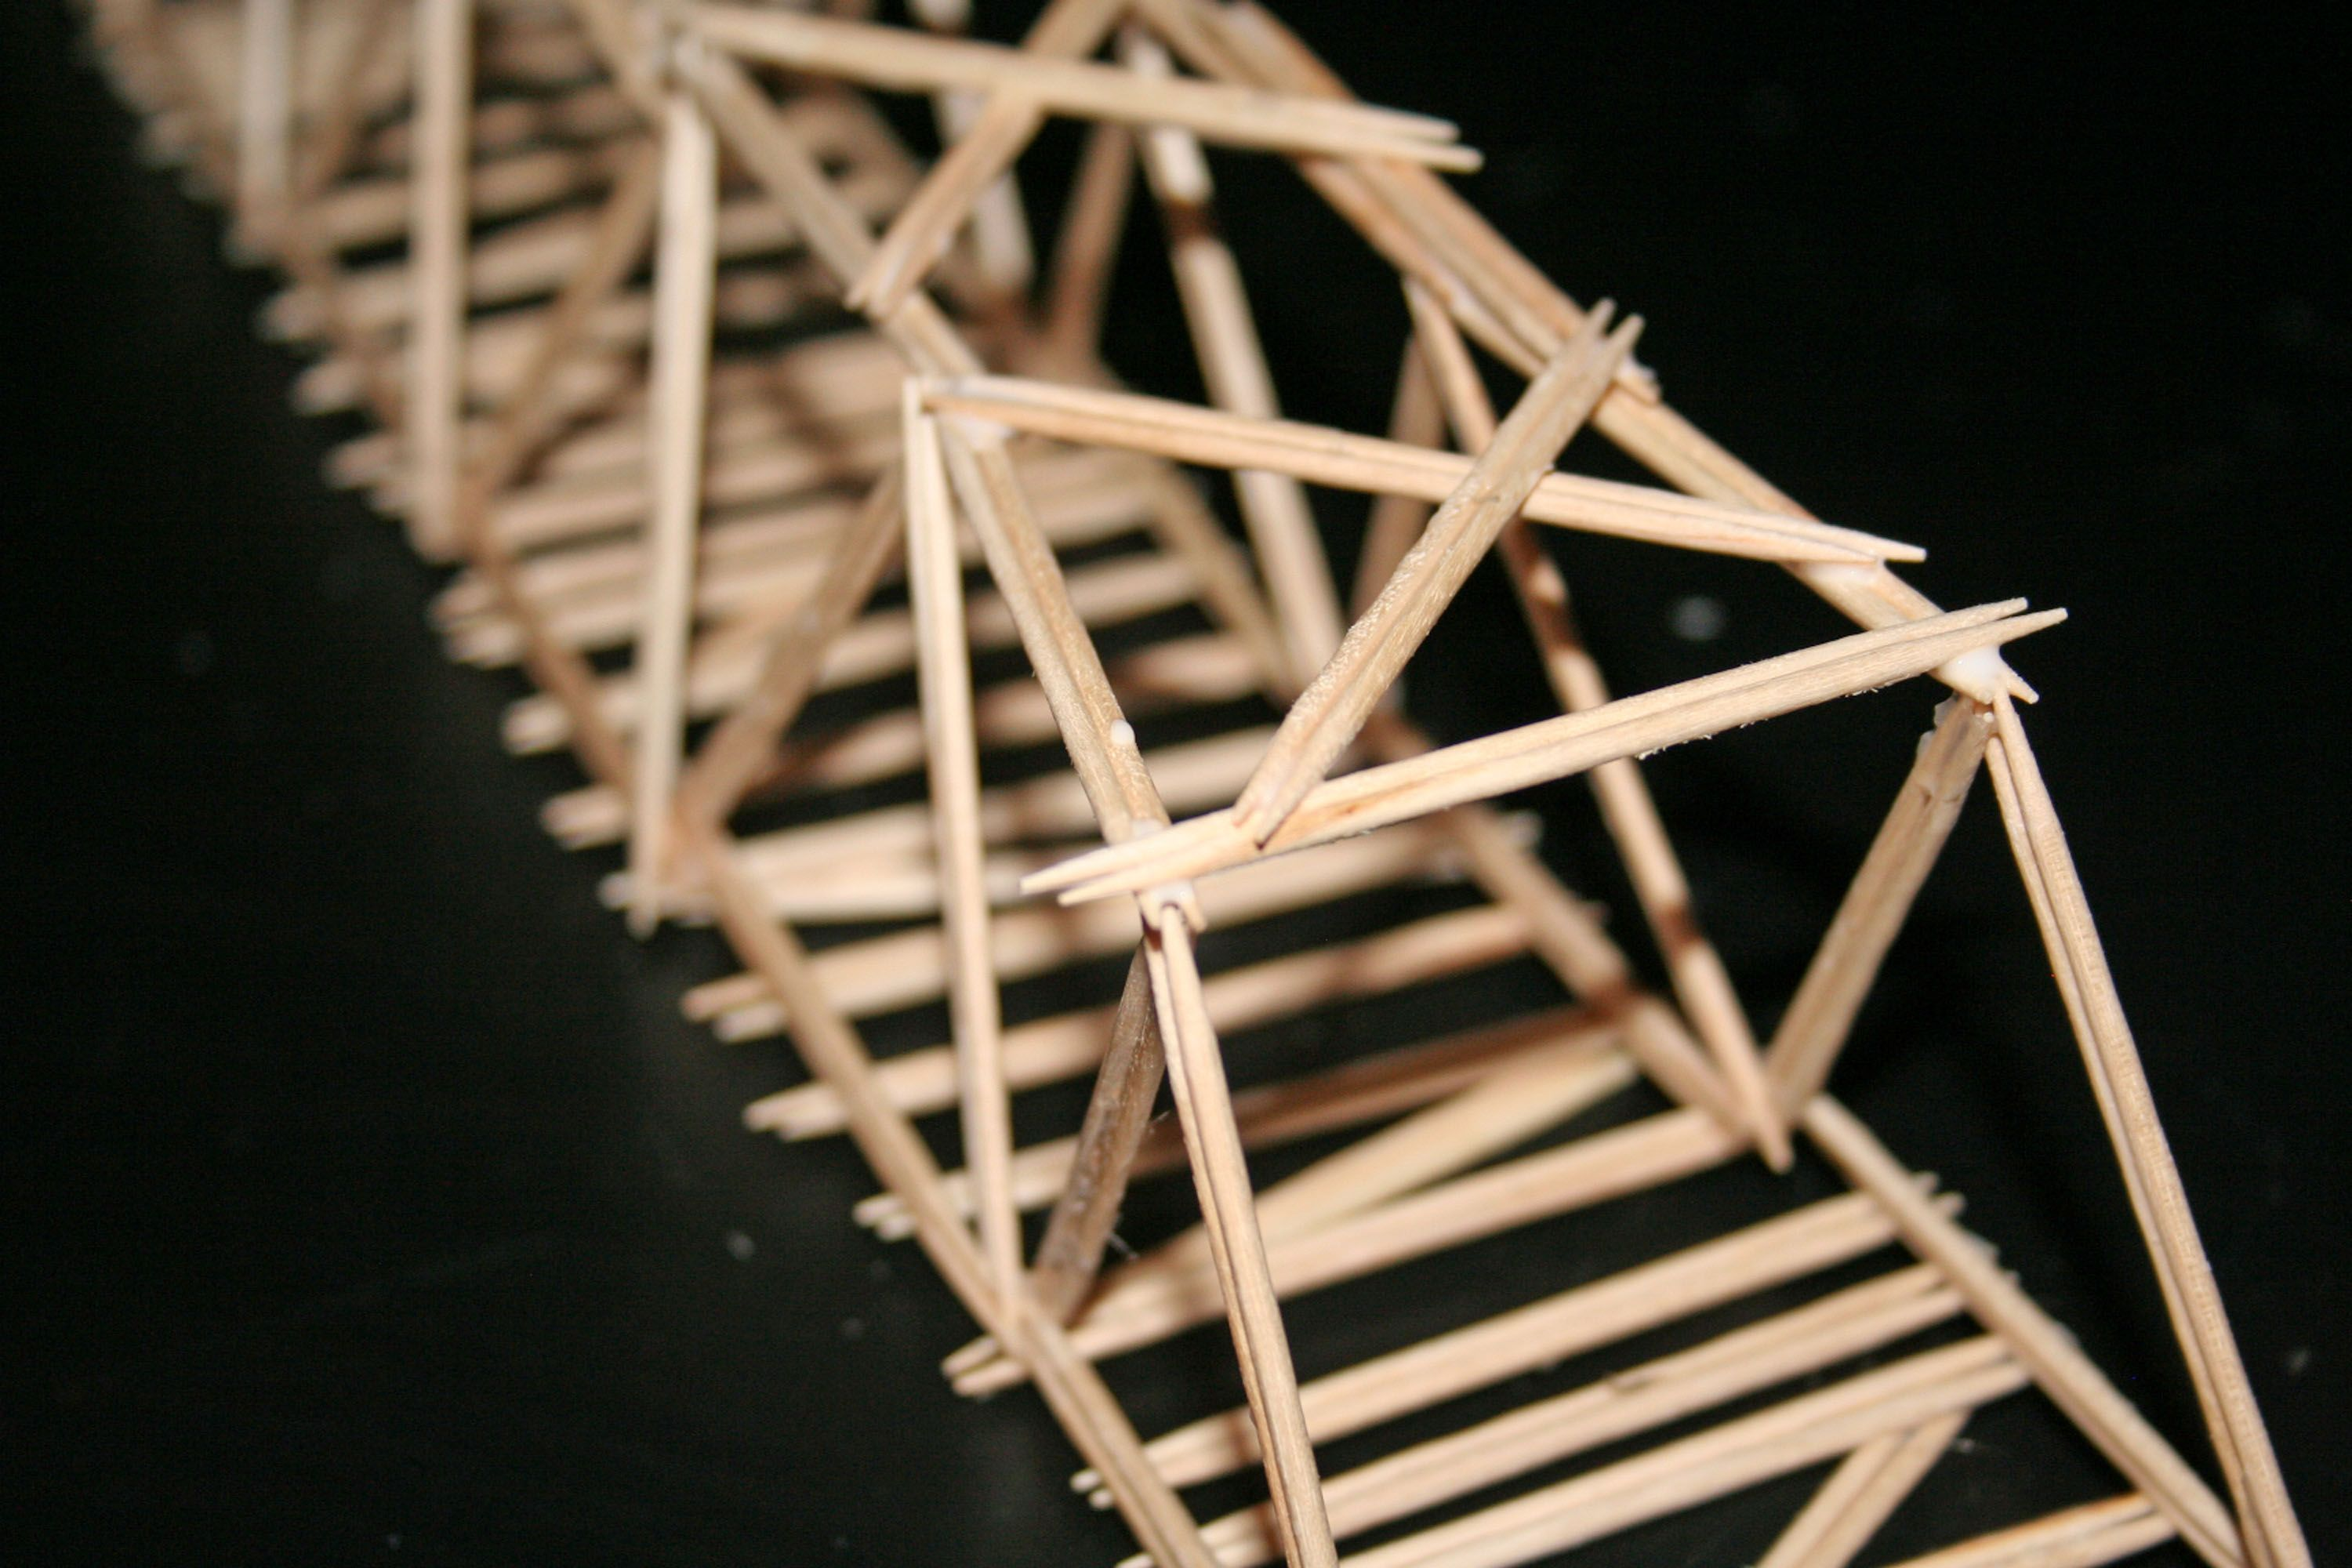 how to build a toothpick bridge that is strong